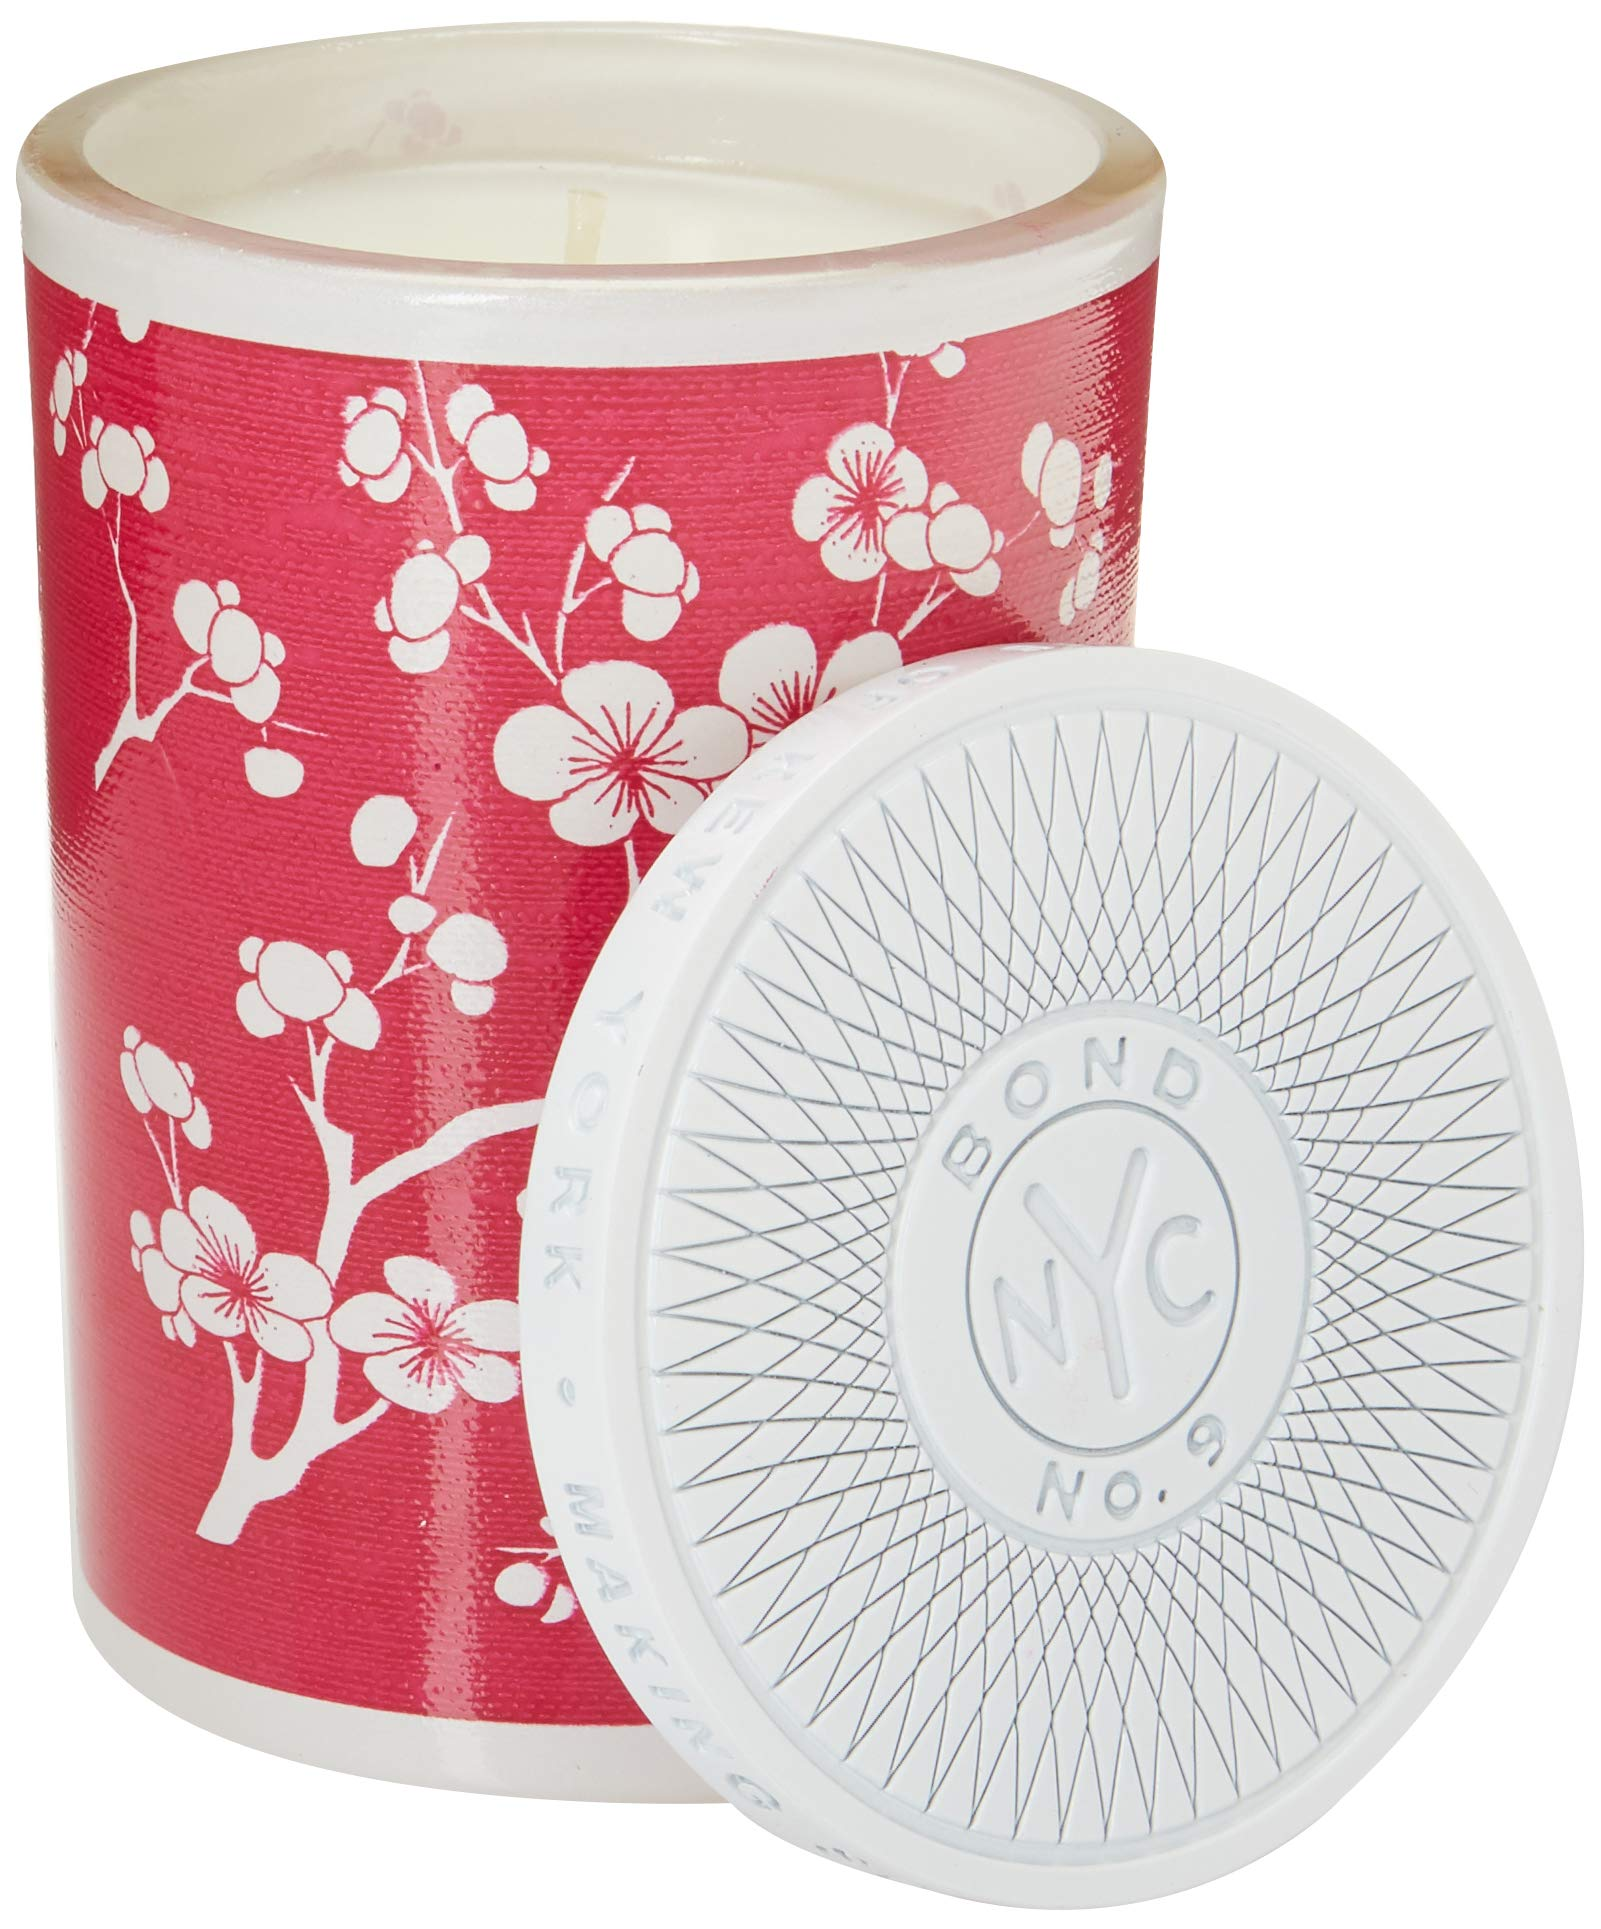 Bond No. 9 Scented Candle - Chinatown 180g/6.4oz